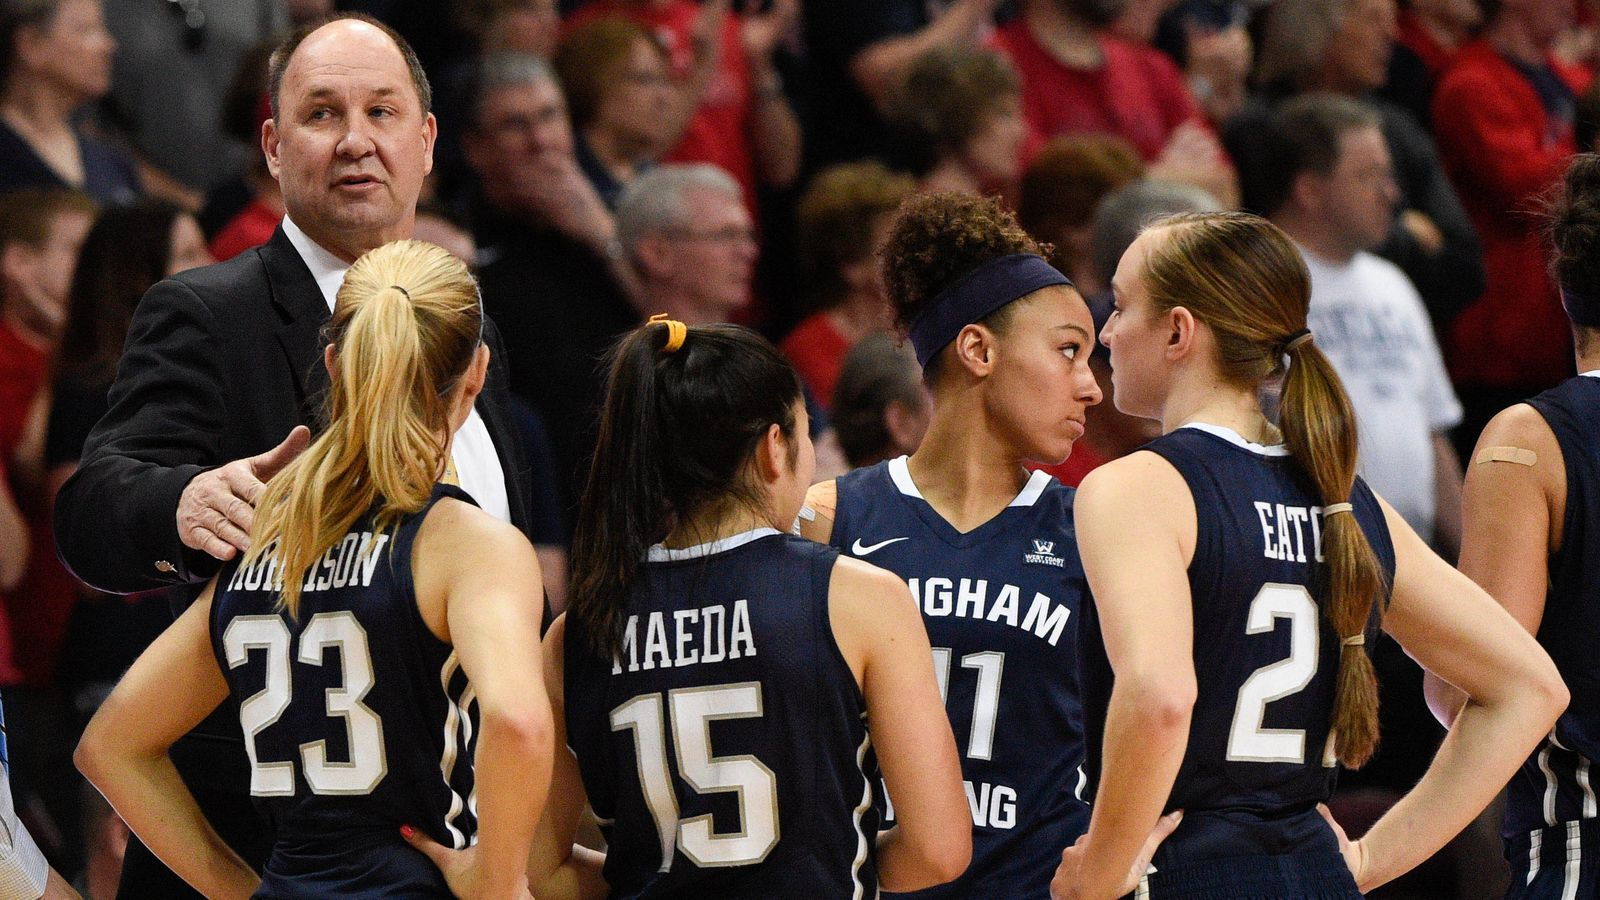 Byu Women S Basketball 2015 Non Conference Schedule Announced Womens Basketball Basketball Schedule Byu Basketball